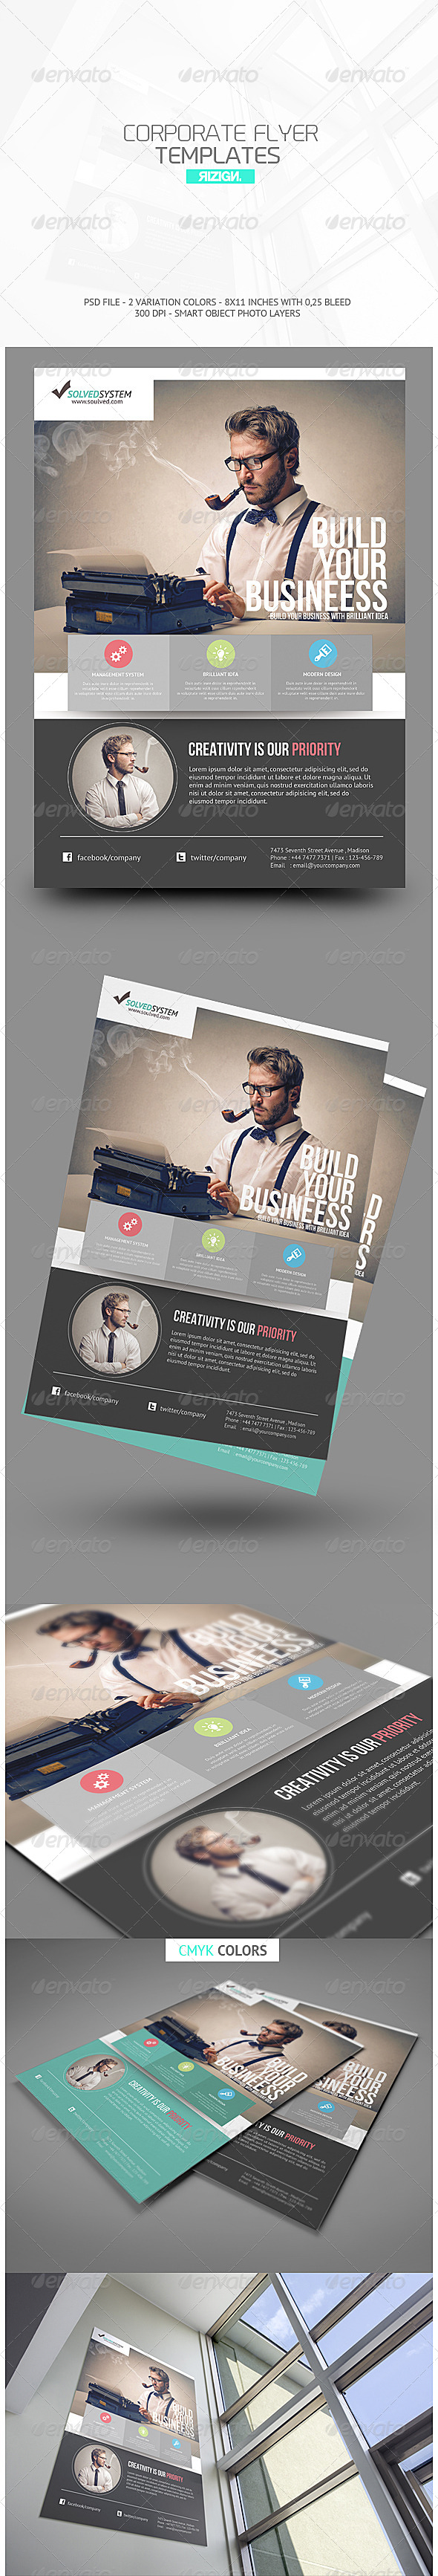 GraphicRiver Corporate Flyer 6556502